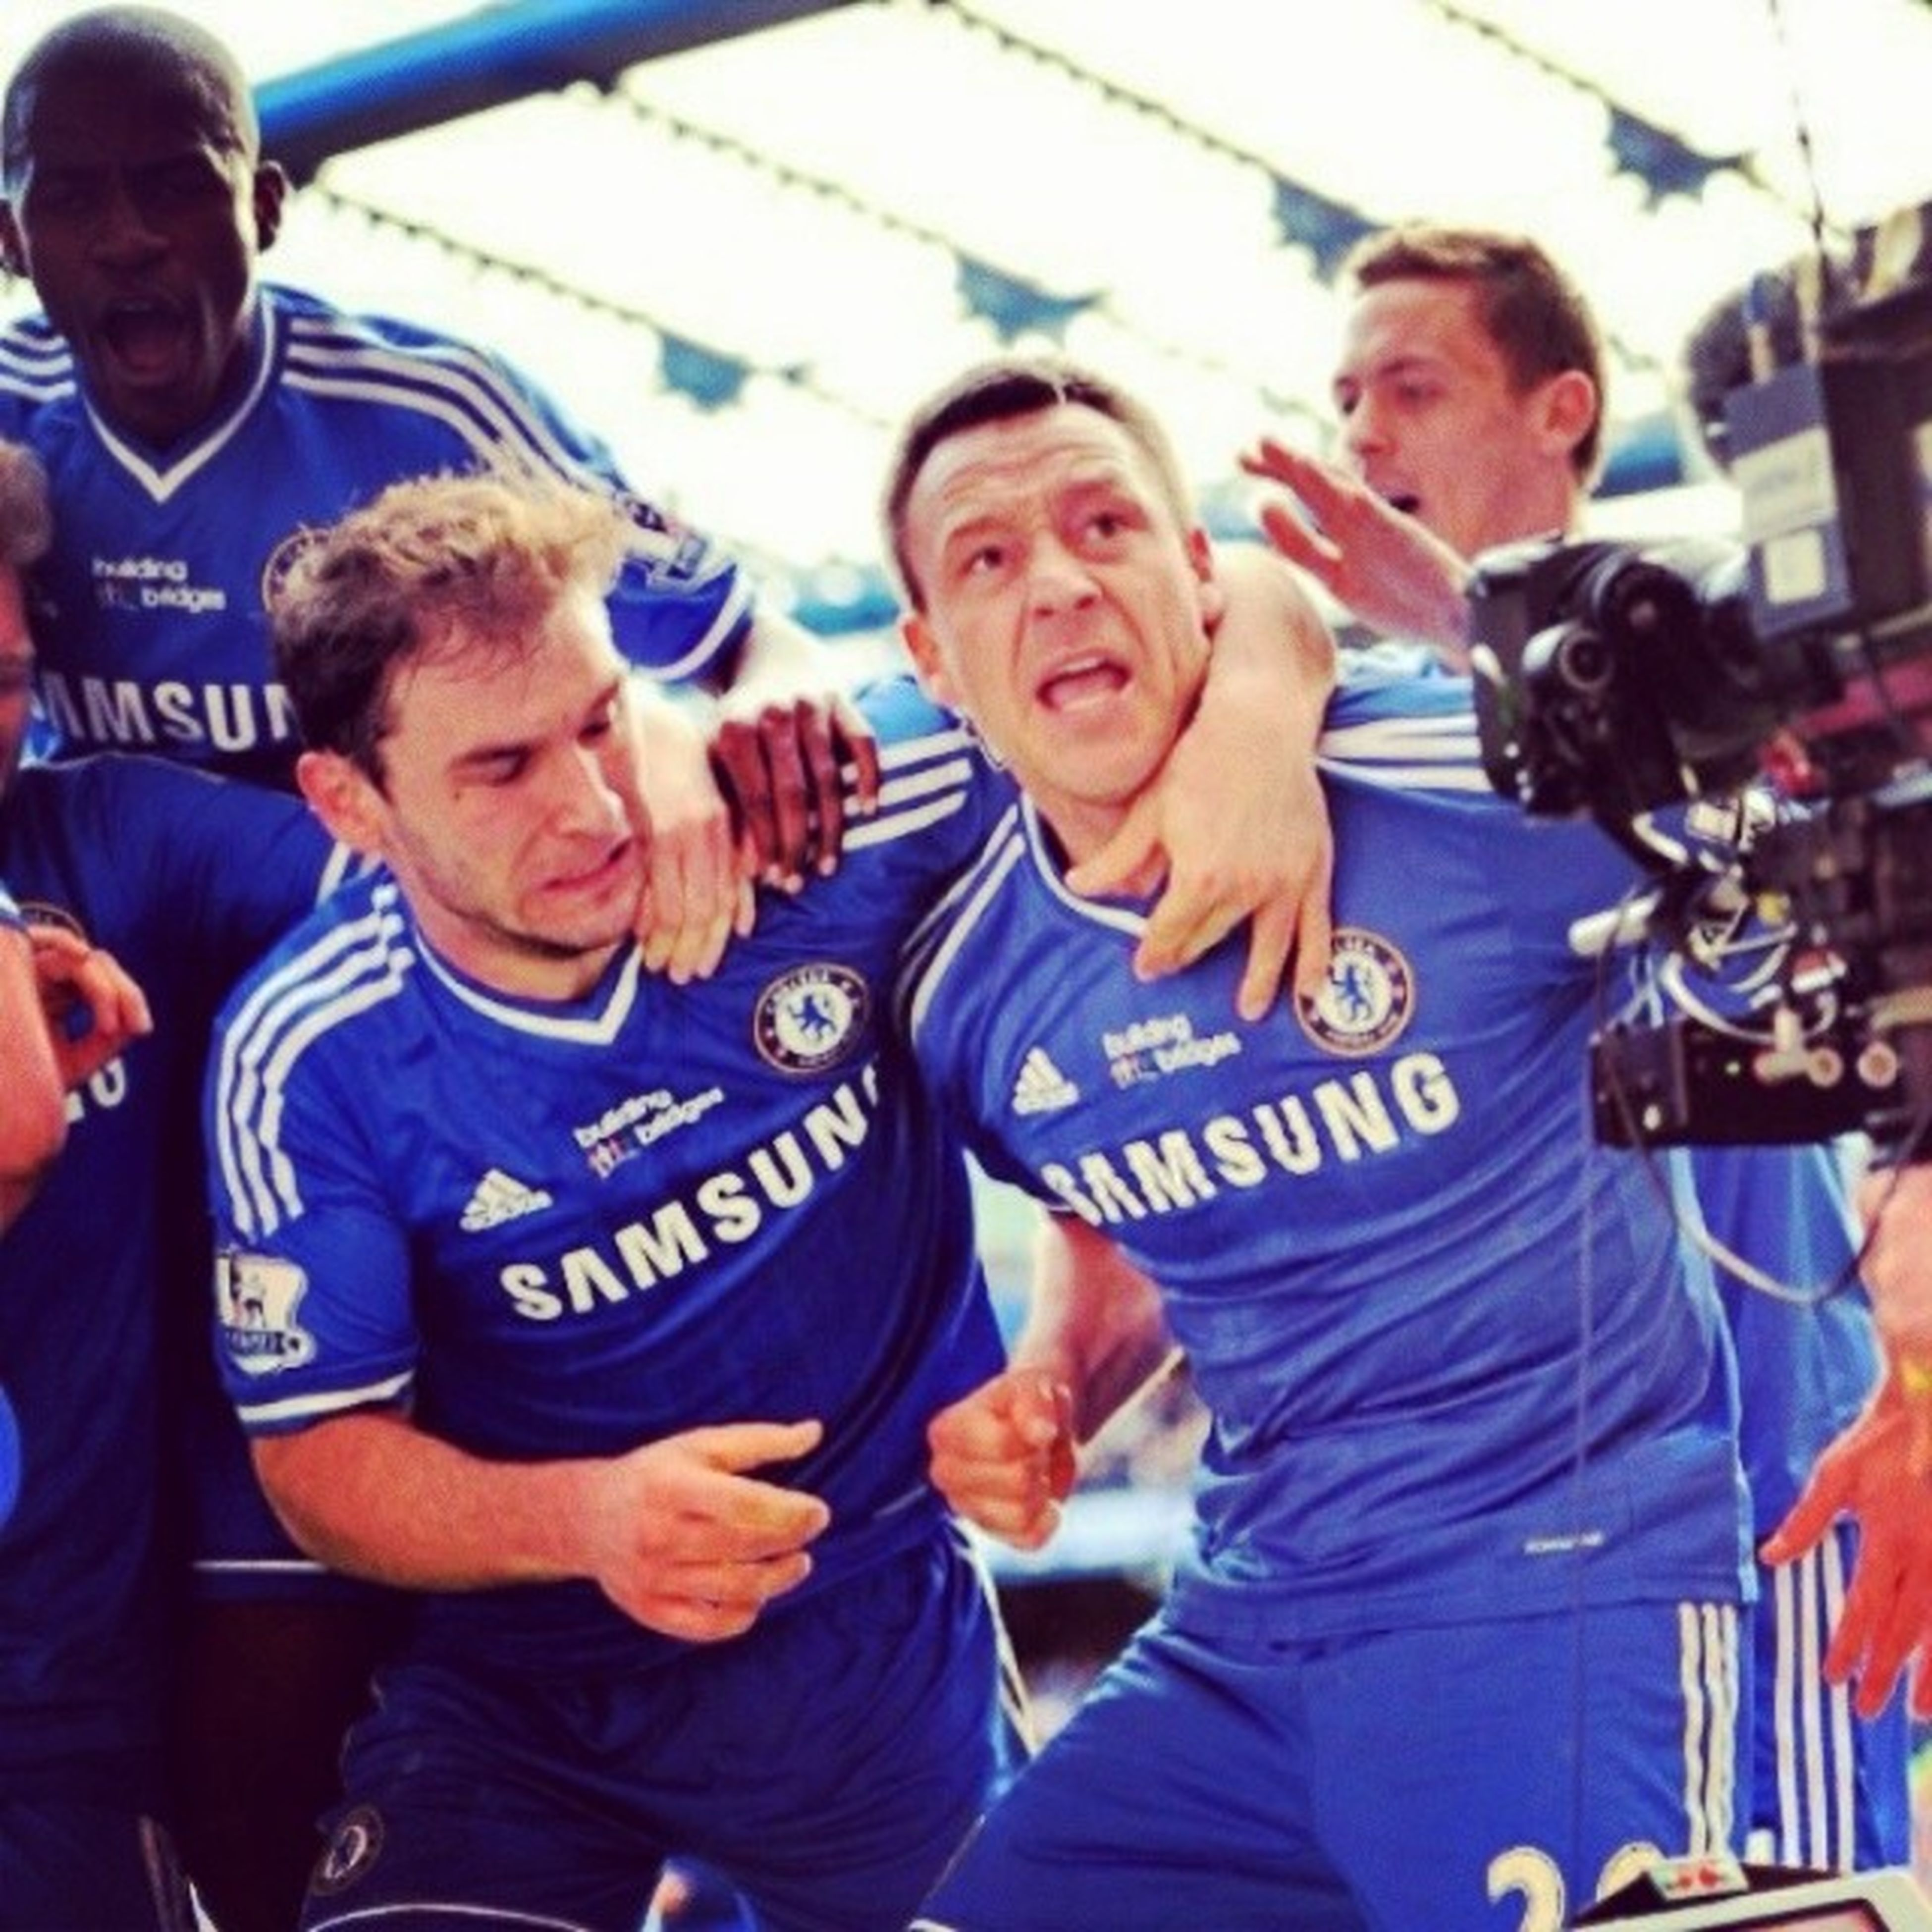 Yupiee Chelsea wins 3-1 against FulhamTop of the TableBarclays Premiere LeagueFull supportDeserved winner